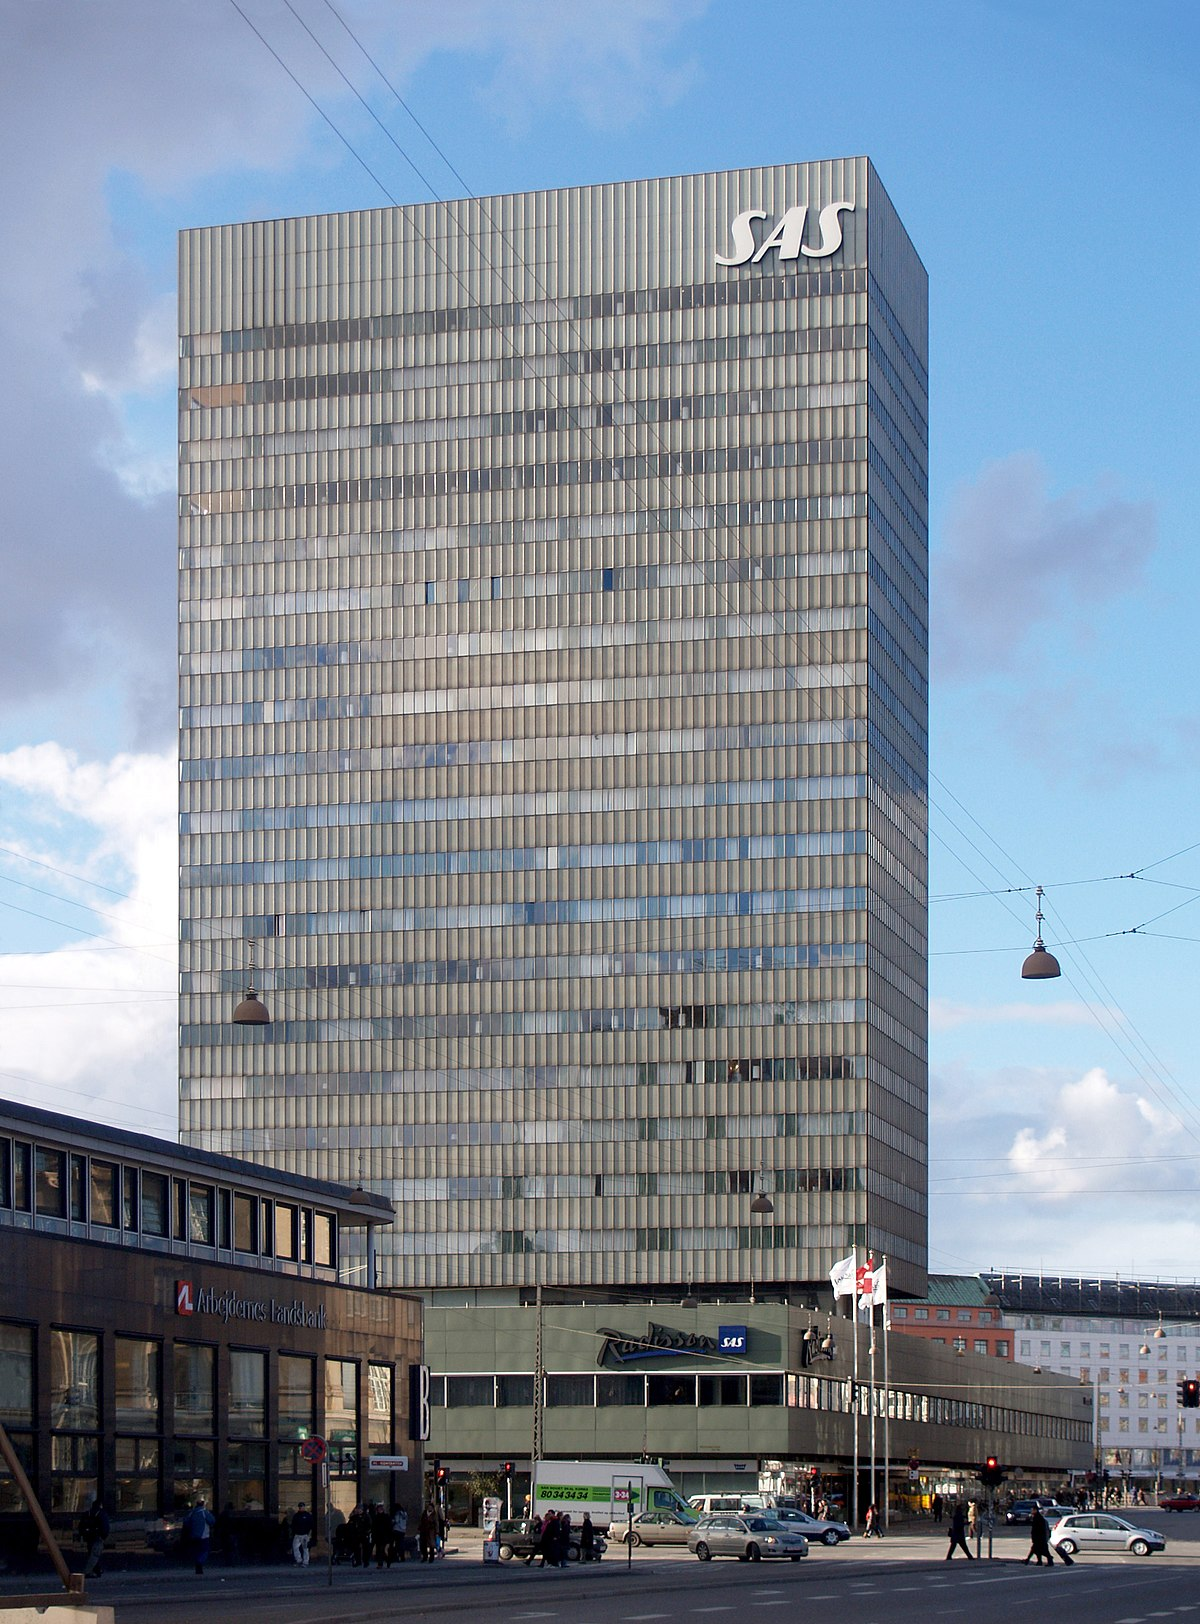 Radisson Collection Hotel, Royal Copenhagen - Wikipedia